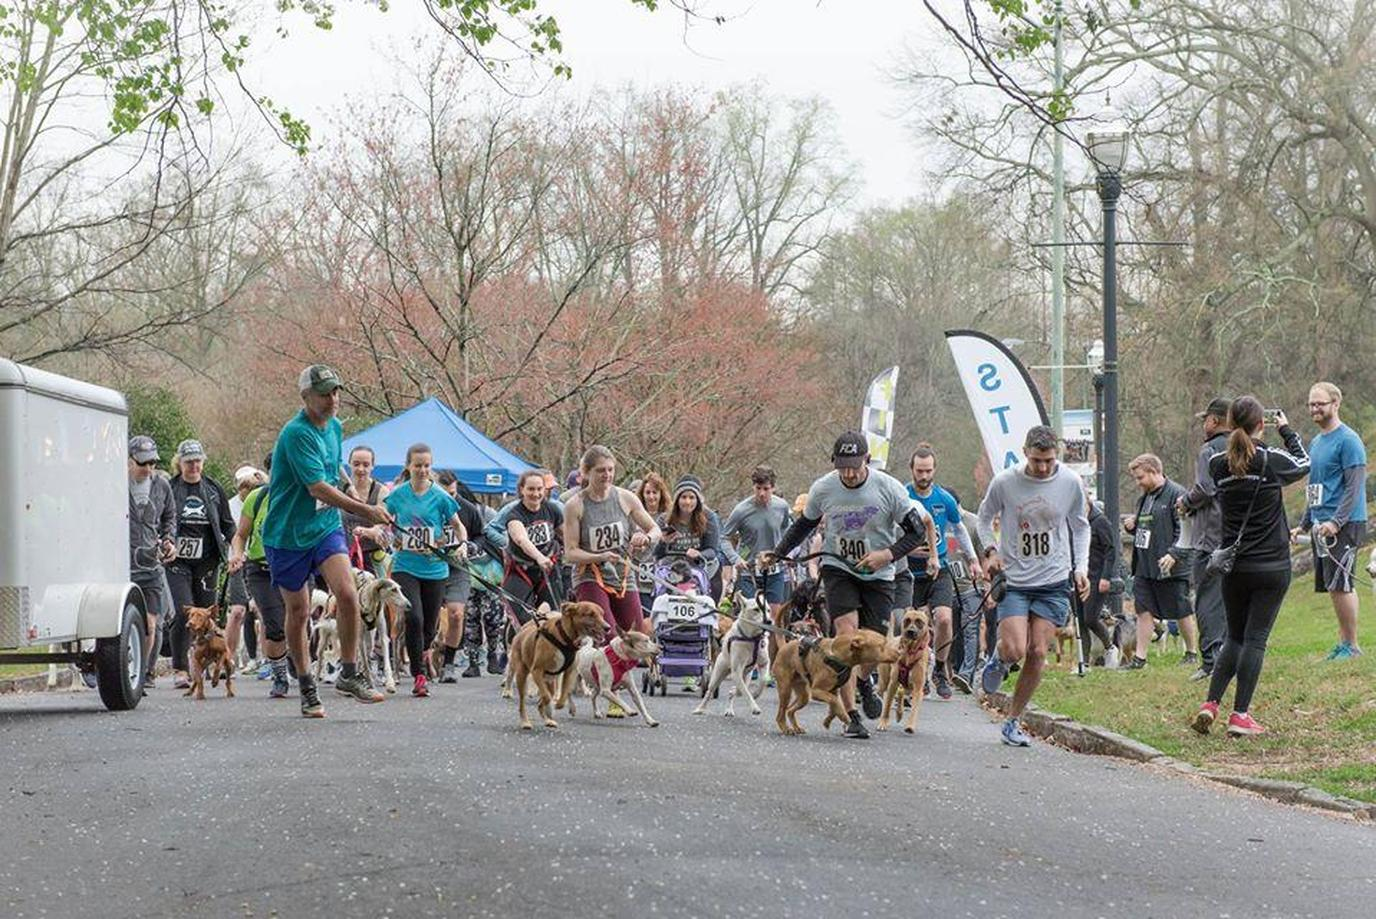 A Group of People Participate in a Pet-Friendly Spring Run With Their Dogs.